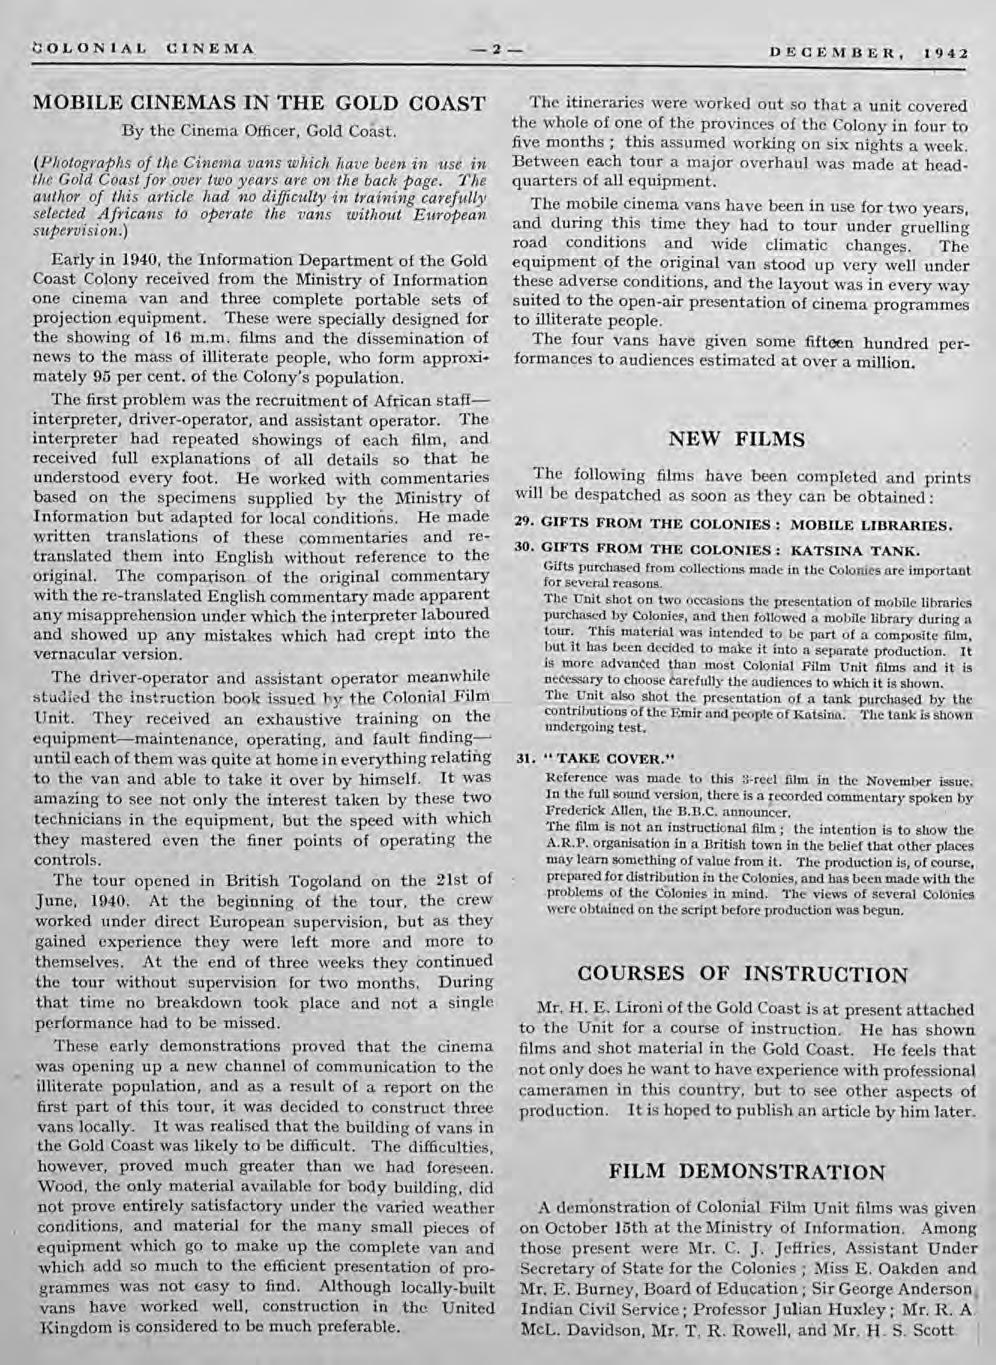 COLONIAL CINEMA -2- DECEMBER, 1942 MOBILE CINEMAS IN THE GOLD COAST By the Cinema Officer, Gold Co'st.